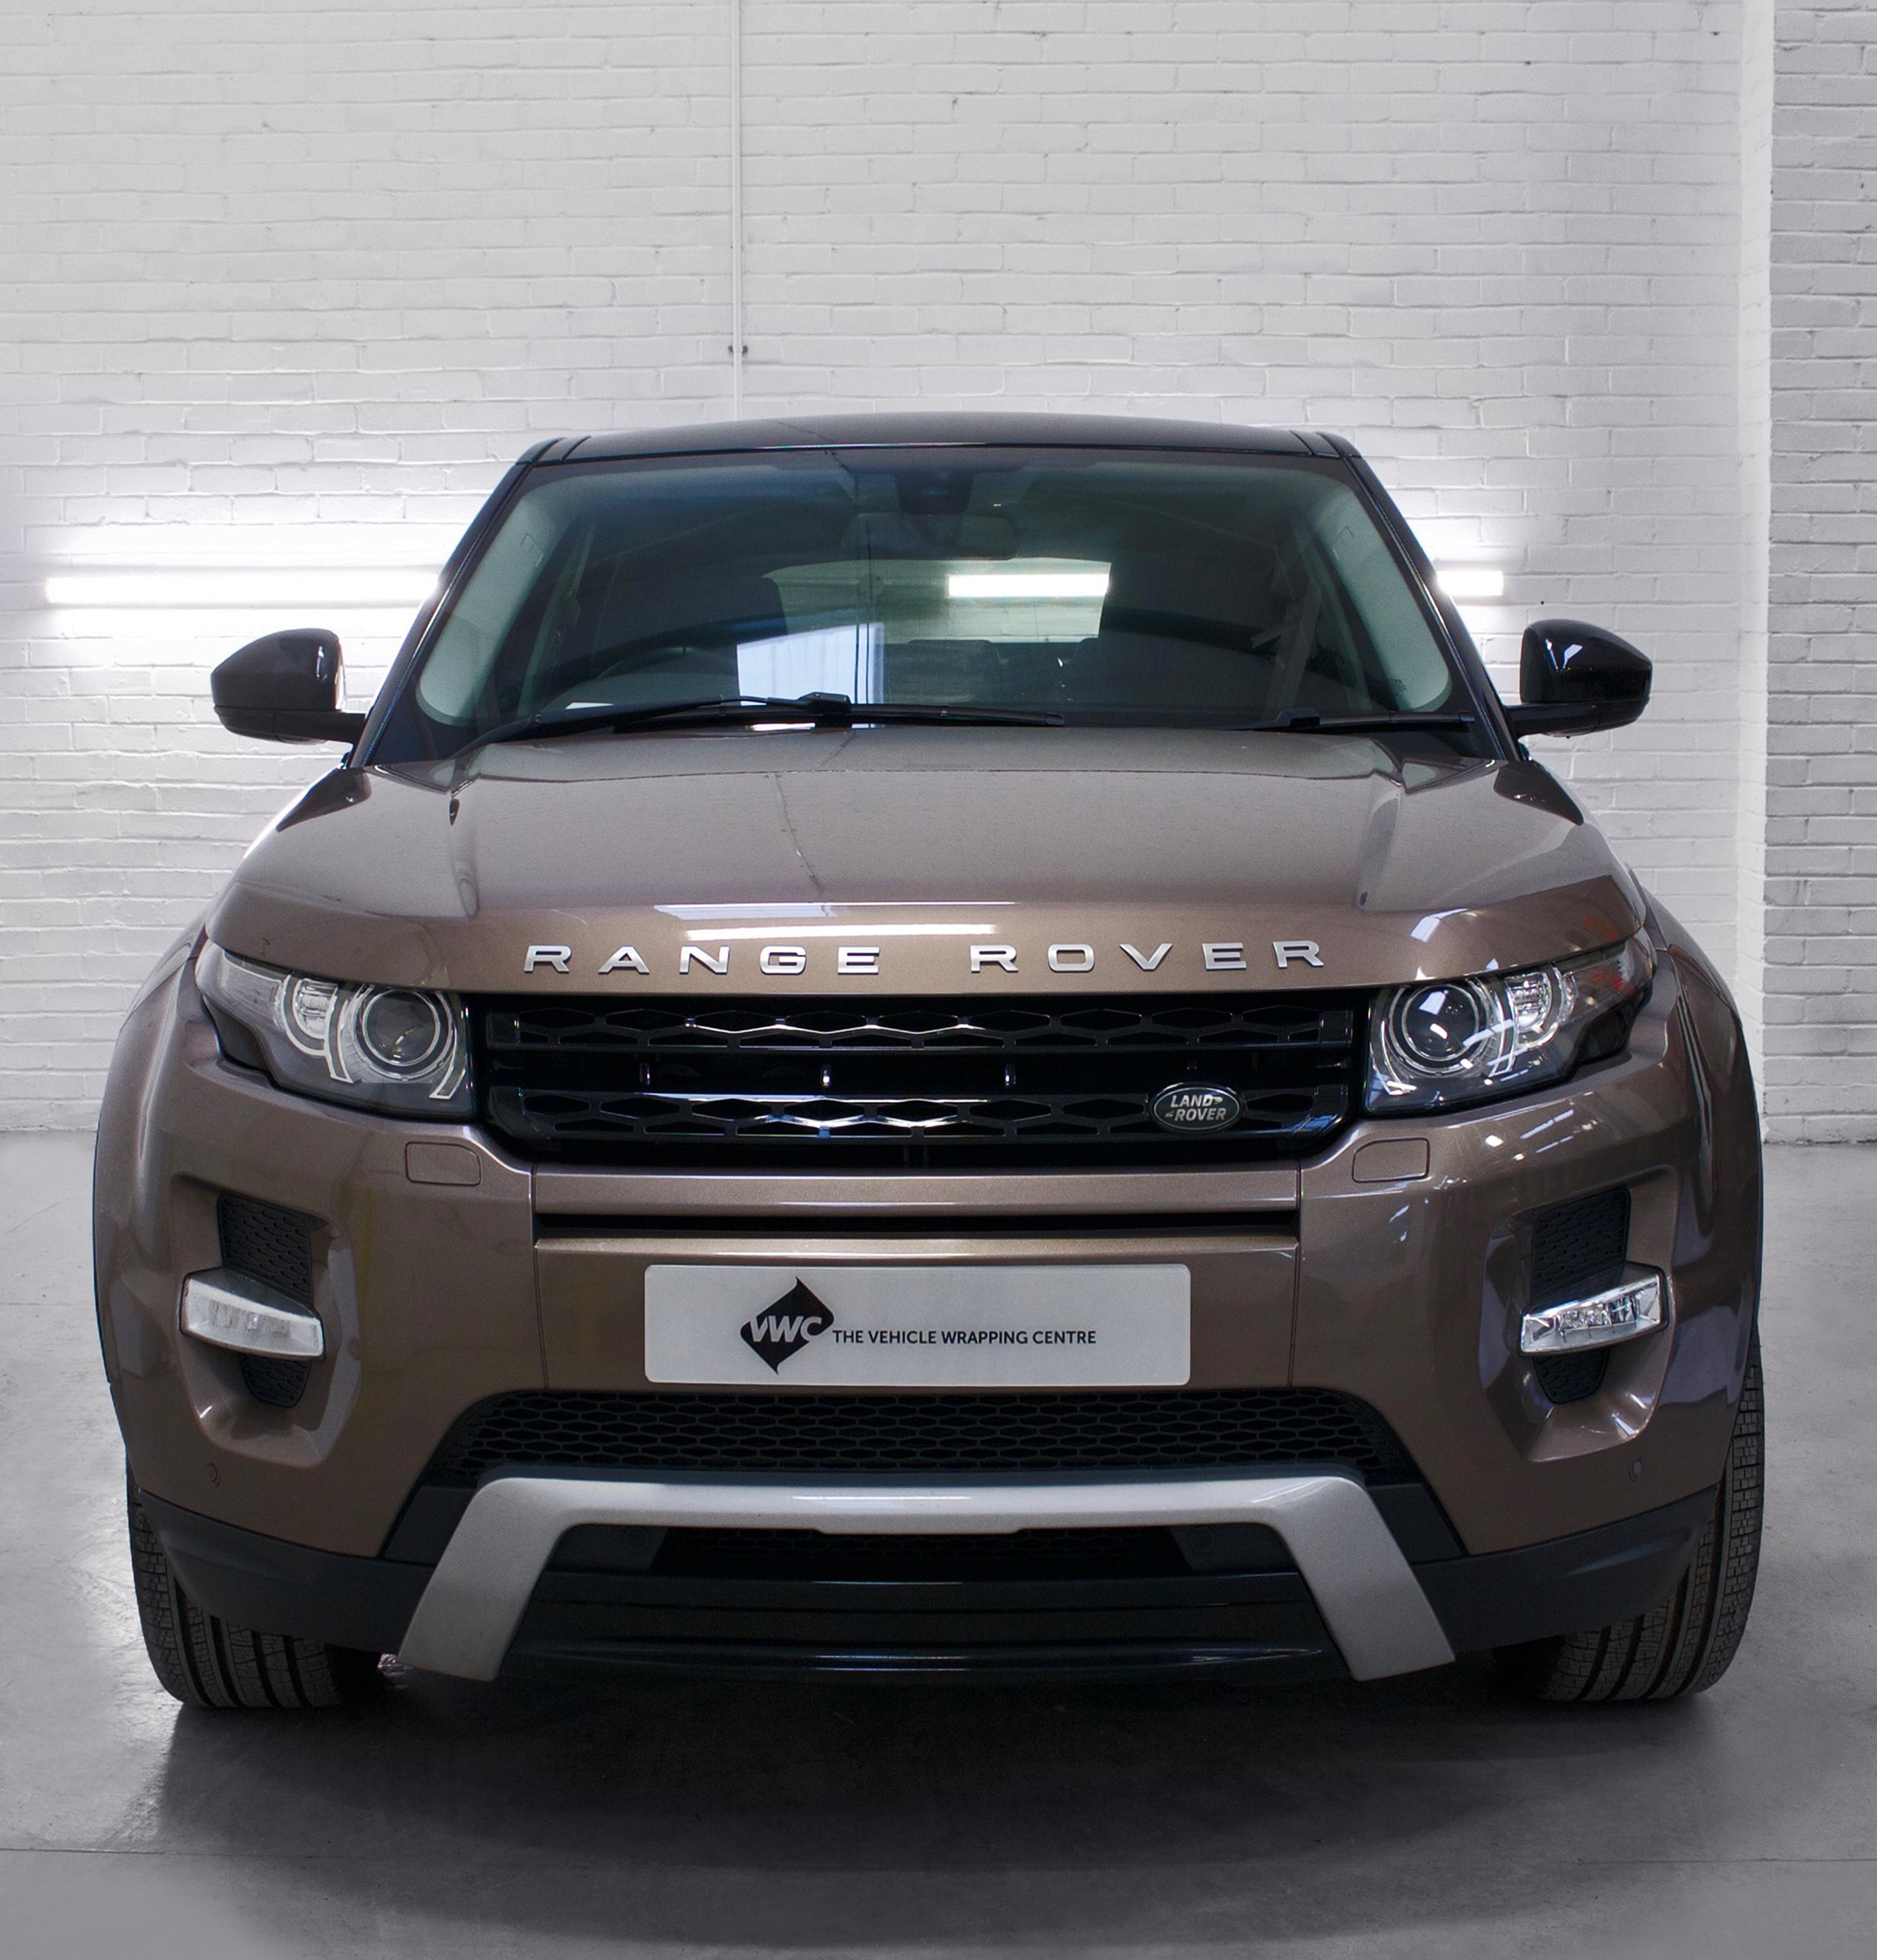 range rover evoque 3m gloss black personal vehicle wrap project. Black Bedroom Furniture Sets. Home Design Ideas